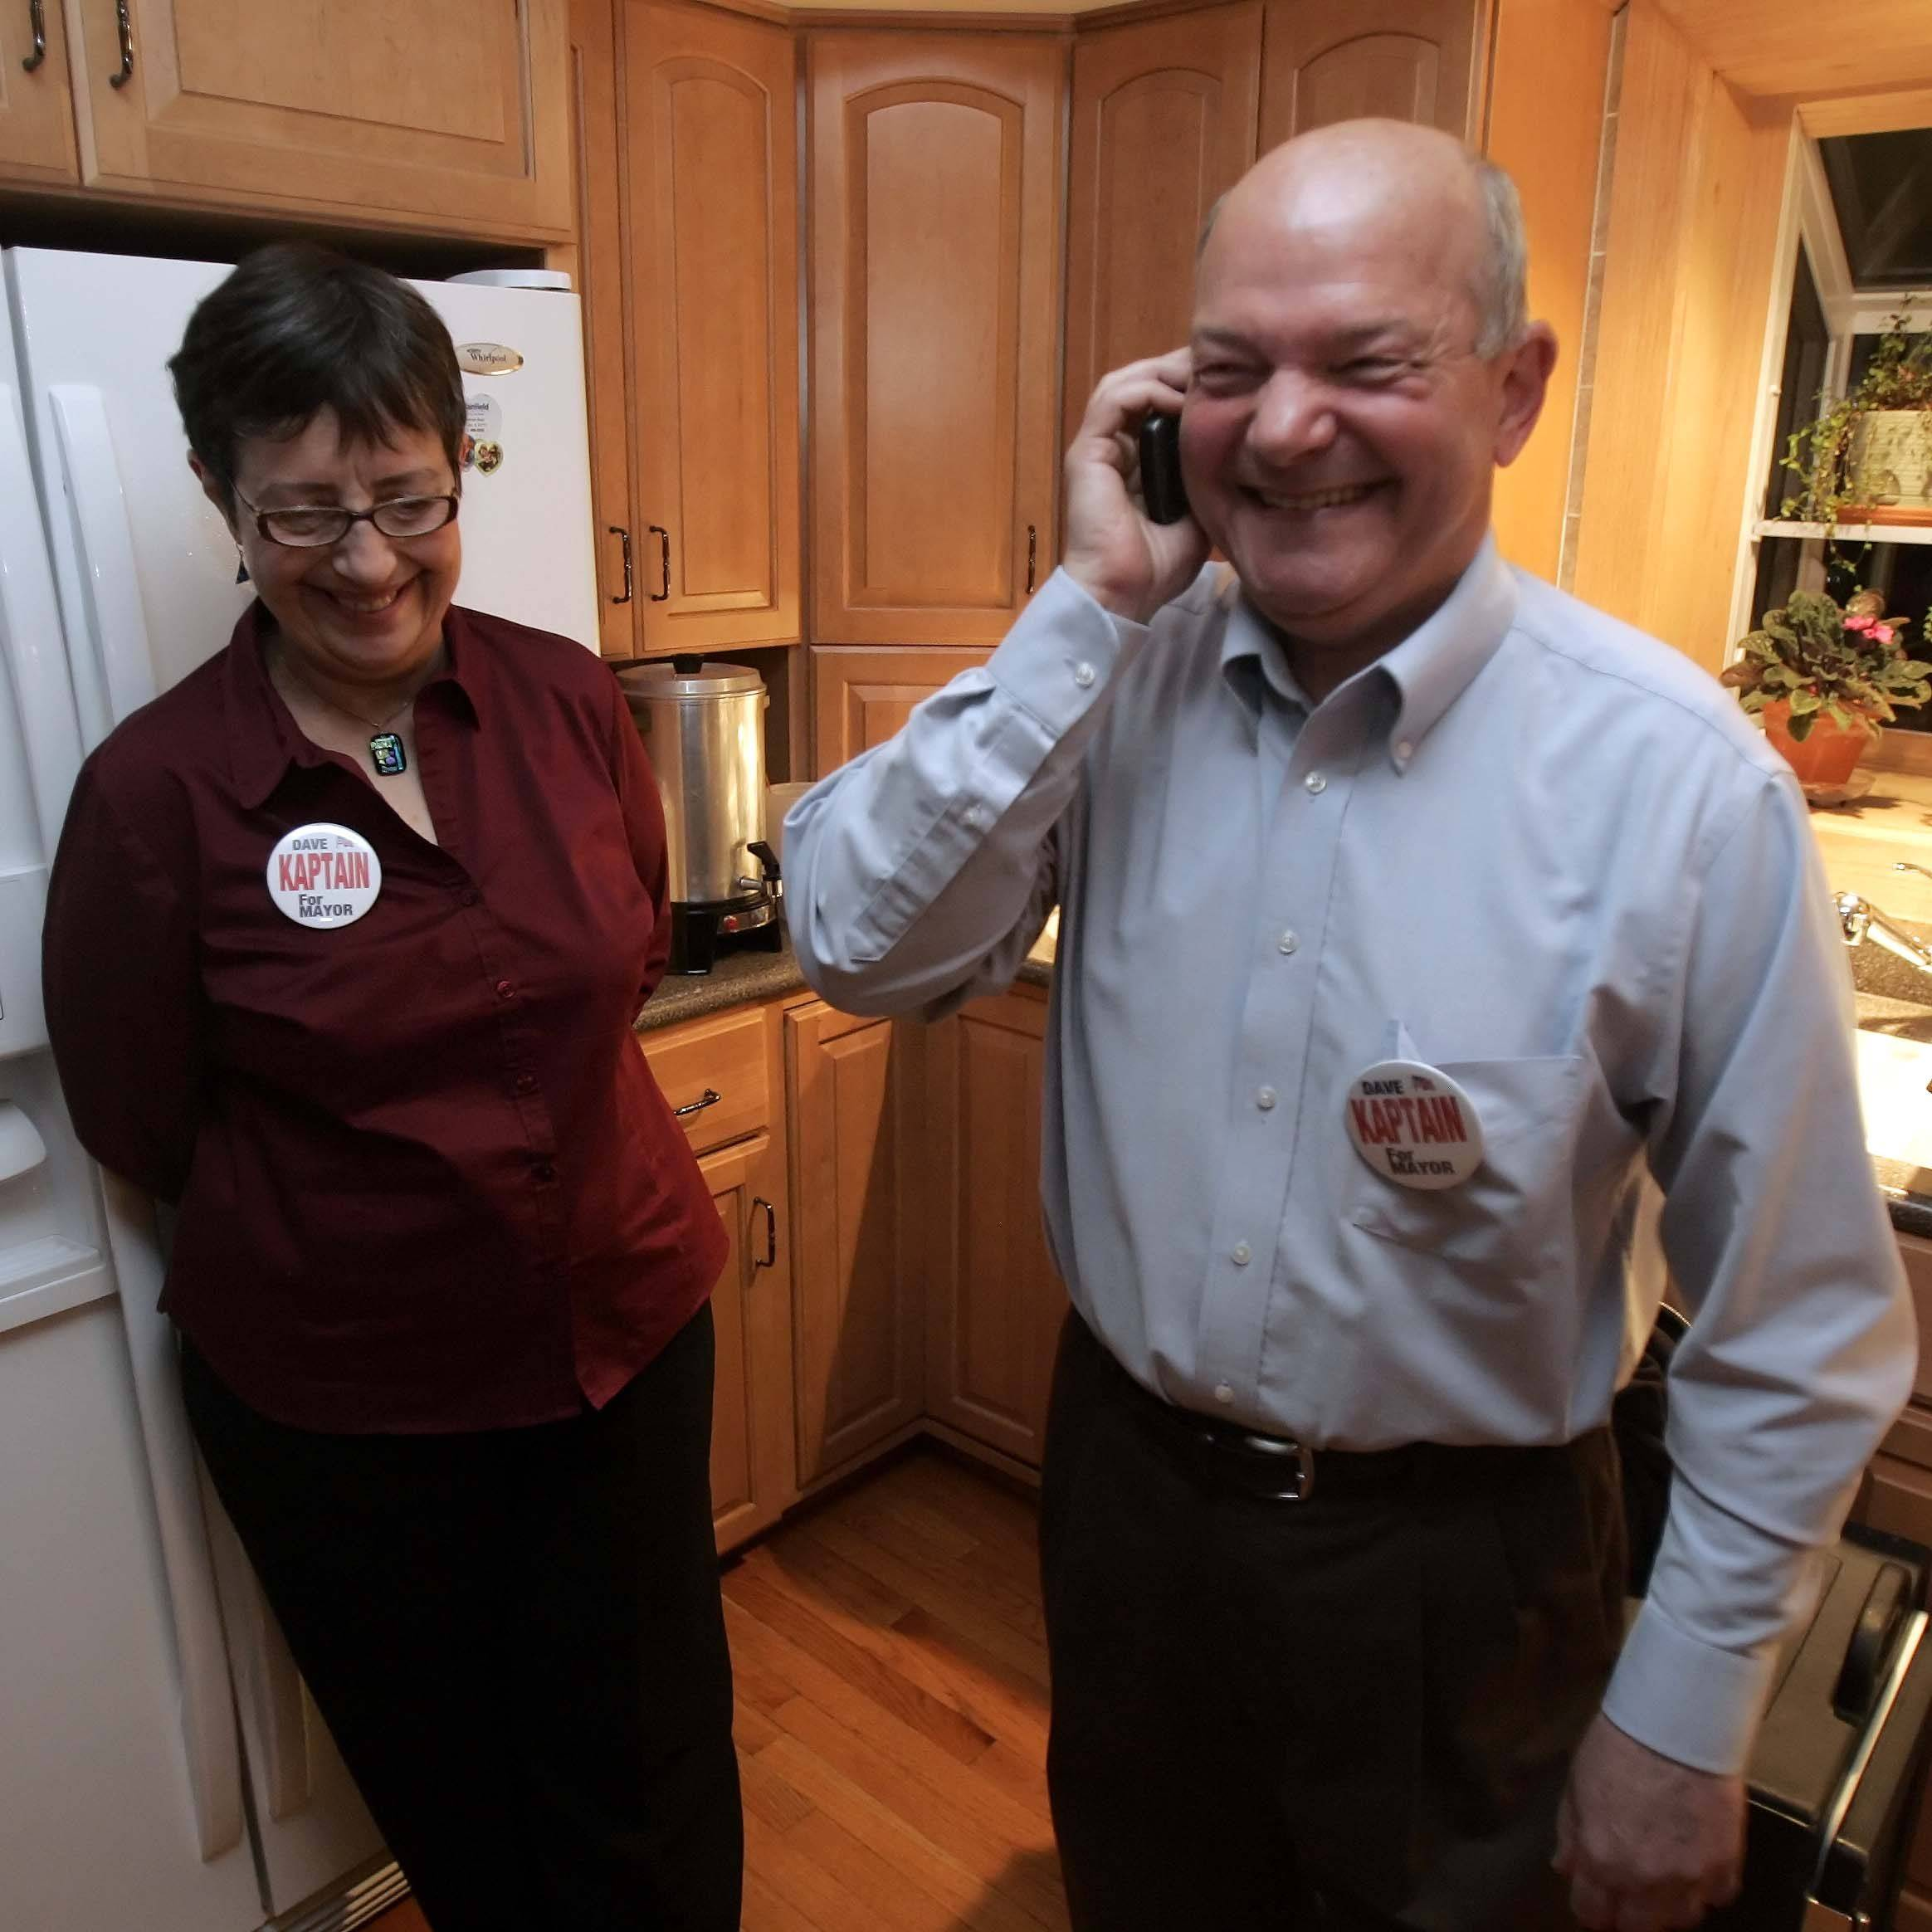 Elgin Councilman David Kaptain and his wife, Sandy, react as election results roll in at Kaptain neighbor's house. Kaptain unseated 12-year Mayor Ed Schock